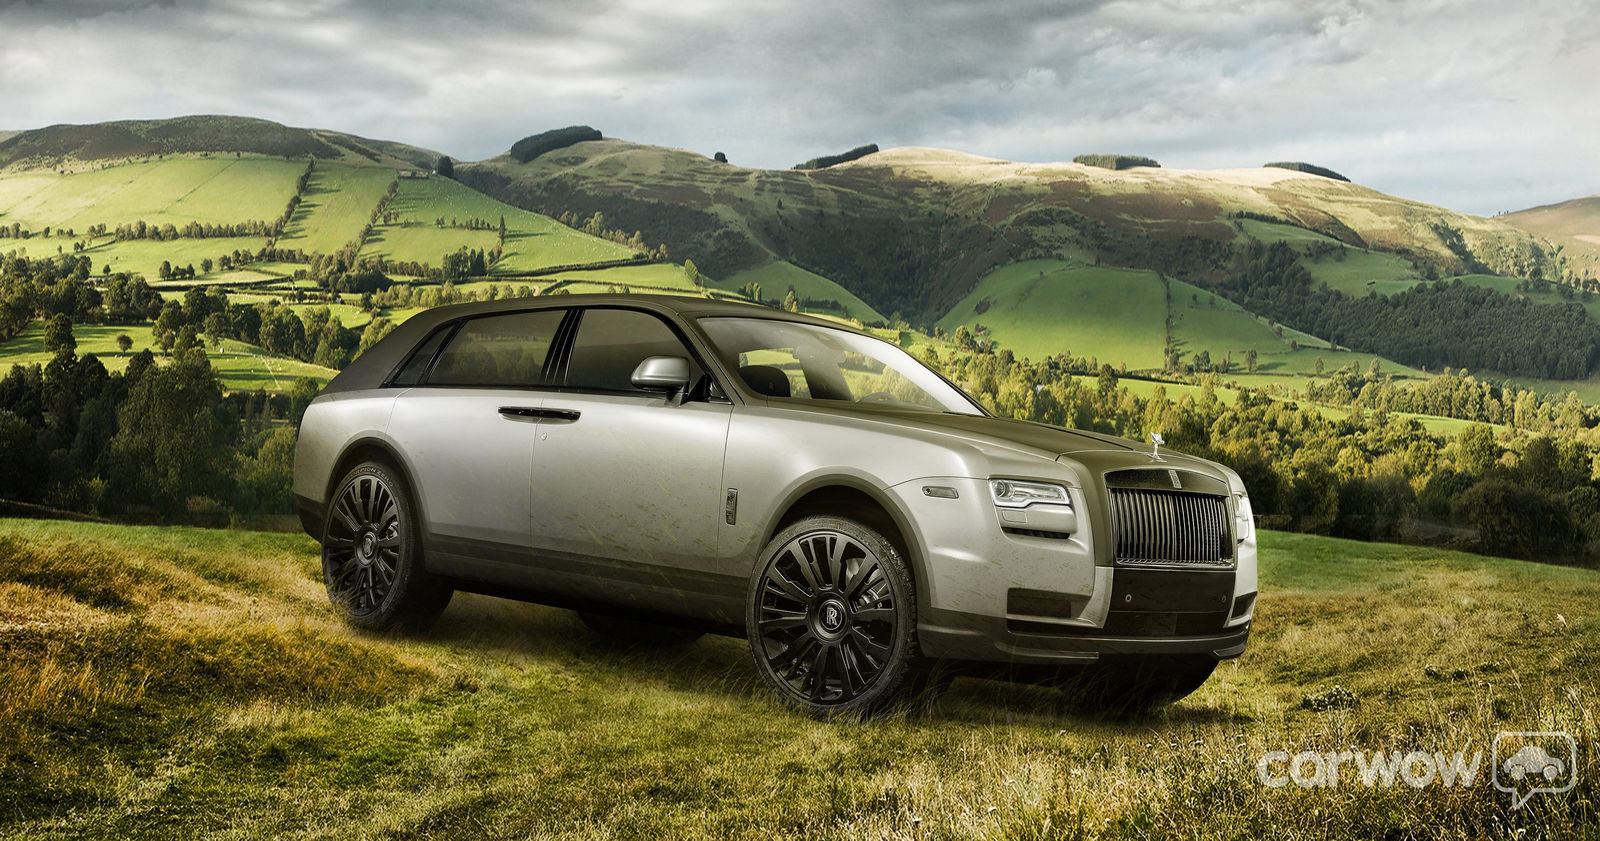 2018 rolls royce suv rendered 2016 new best cars - Rolls Royce Cullinan Suv Engines And Driving